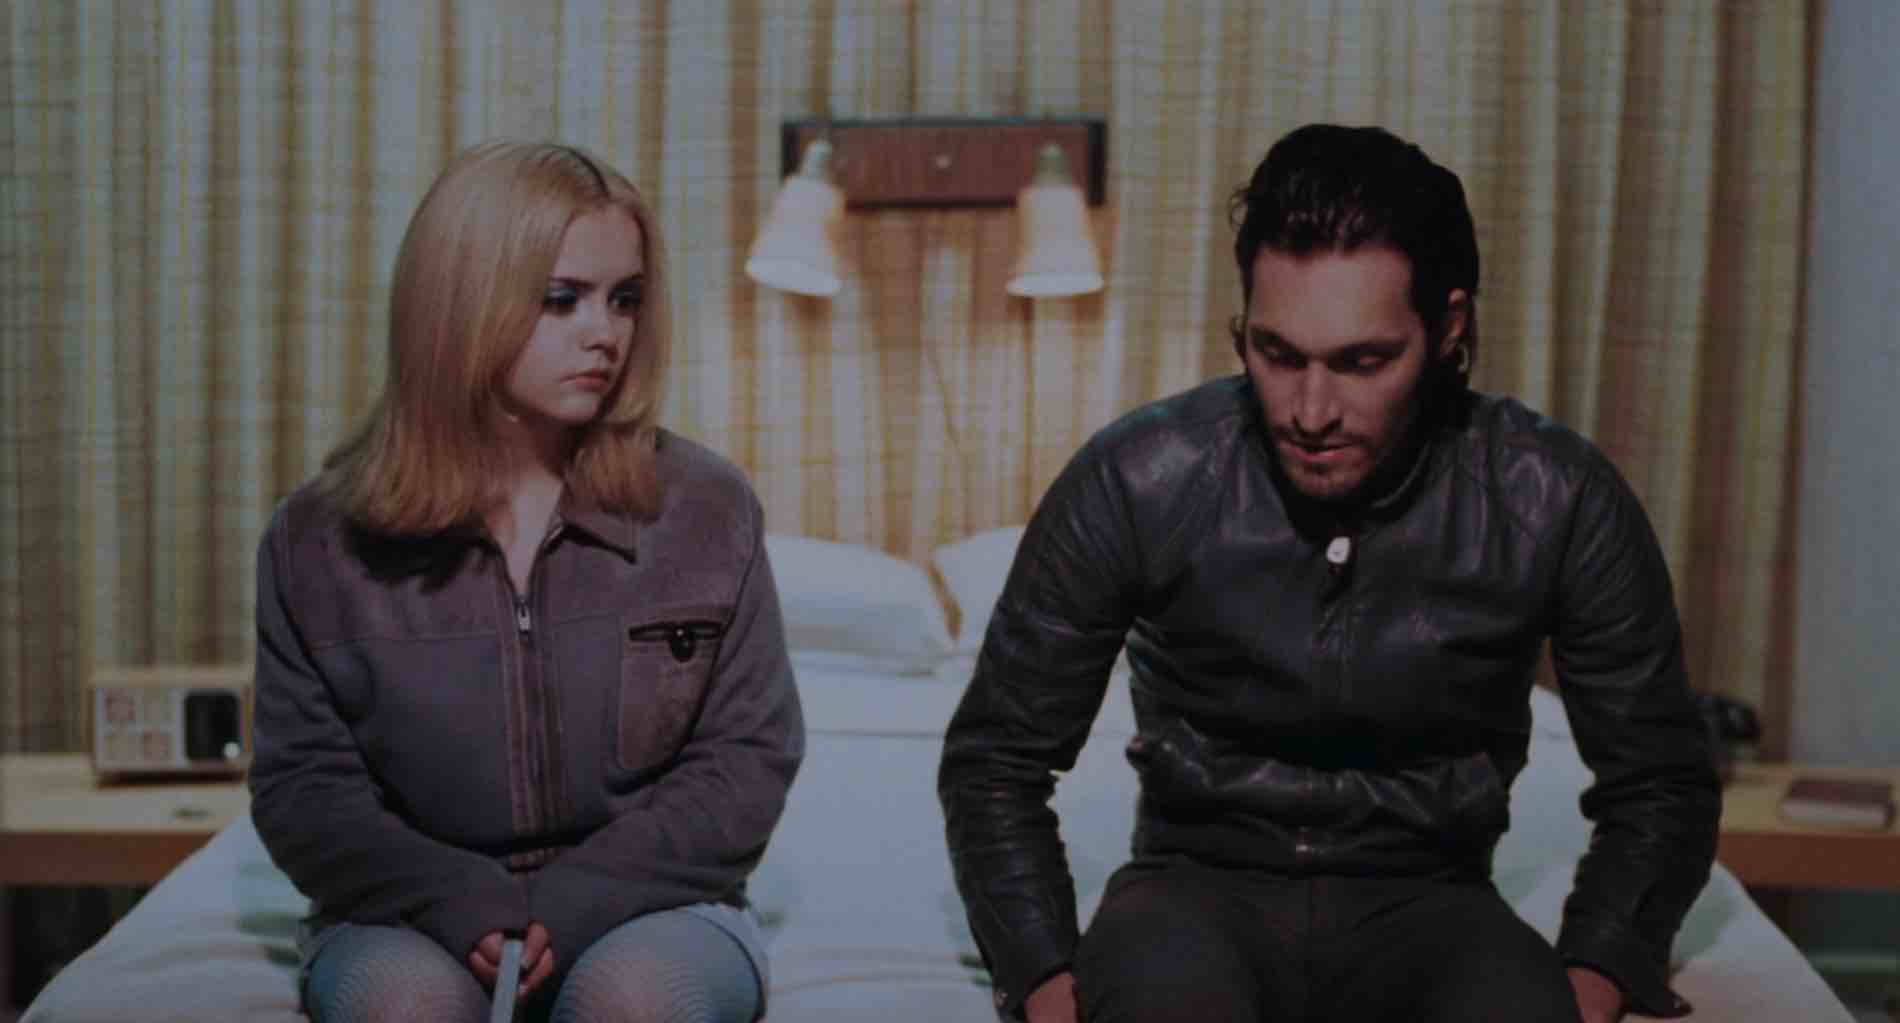 Buffalo'66 (1998) by Vincent Gallo